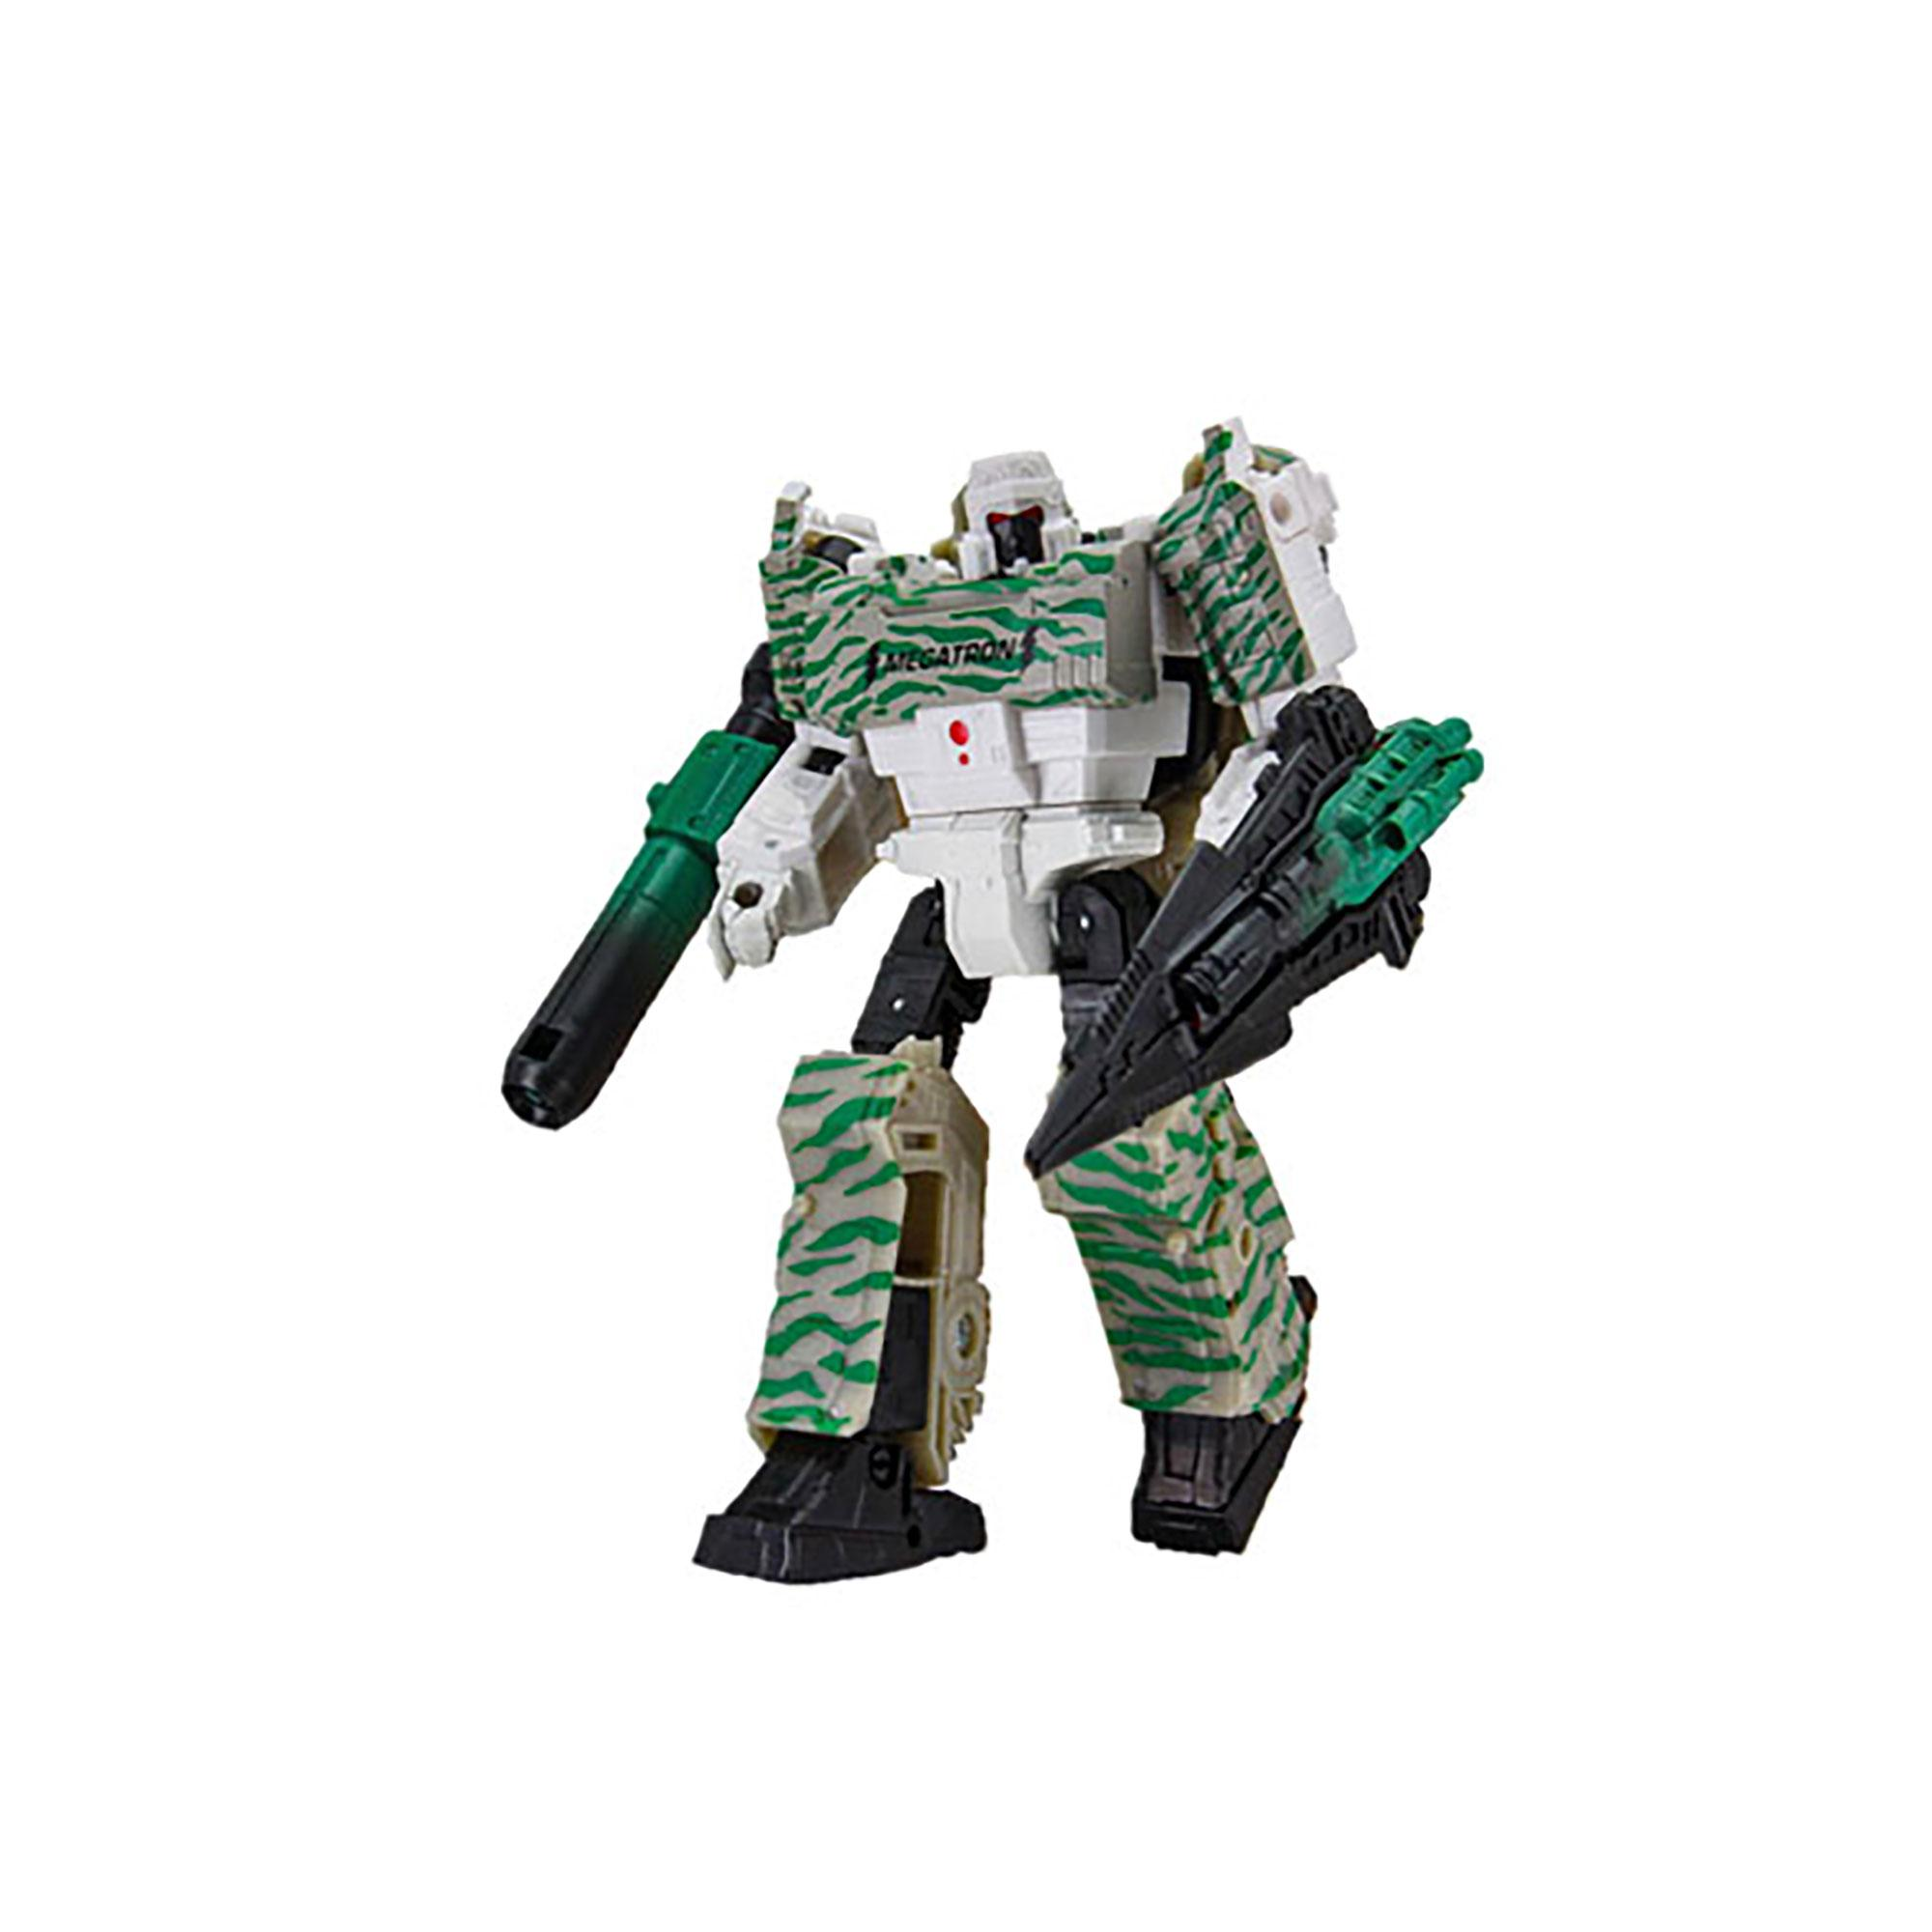 Transformers Generations Selects WFC-GS01 Combat Megatron, War for Cybertron Voyager Figure - Special Edition Camouflage Deco - Collector Figure, 7-inch